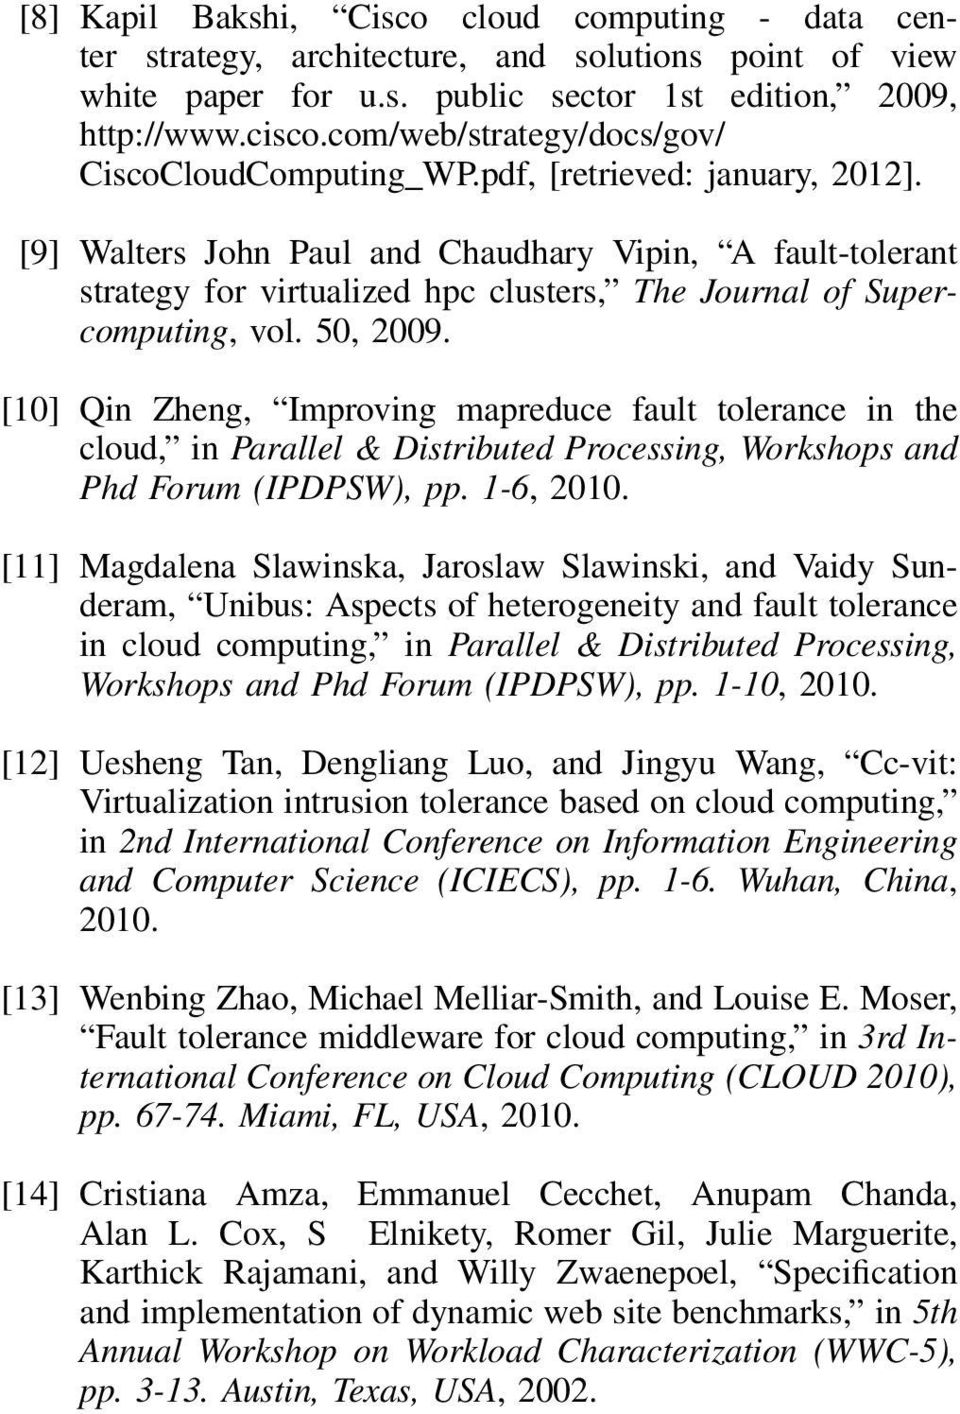 [9] Walters John Paul and Chaudhary Vipin, A fault-tolerant strategy for virtualized hpc clusters, The Journal of Supercomputing, vol. 50, 2009.